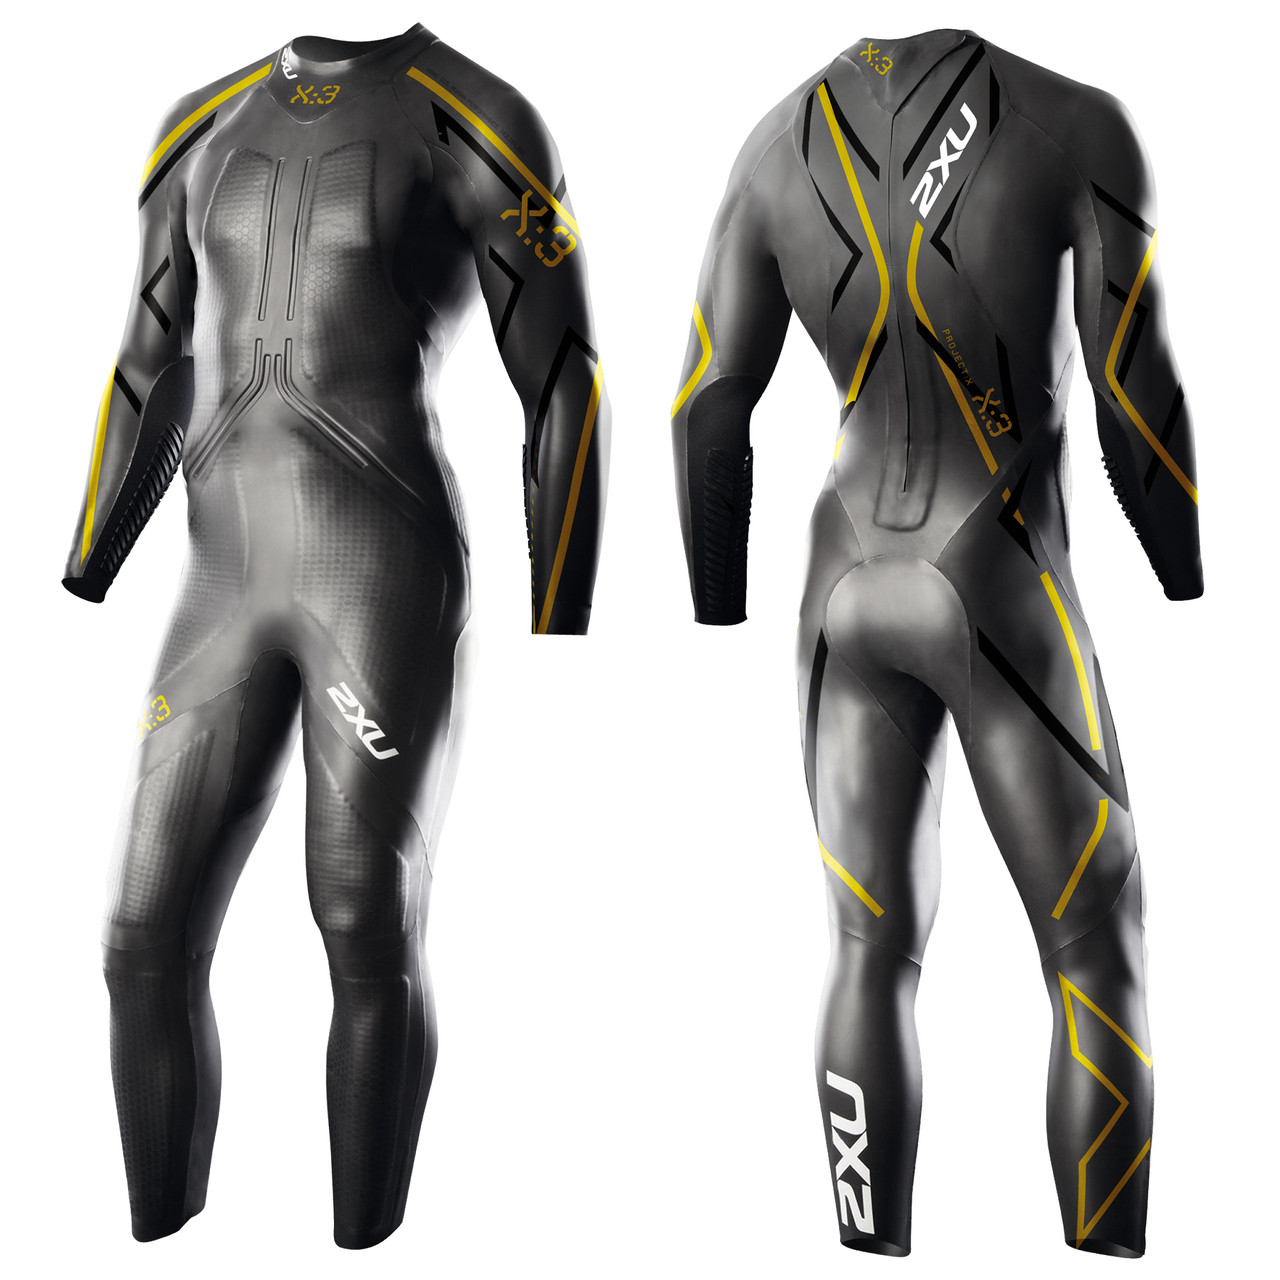 2XU Men's X:3 Project X Wetsuit - 2015 price